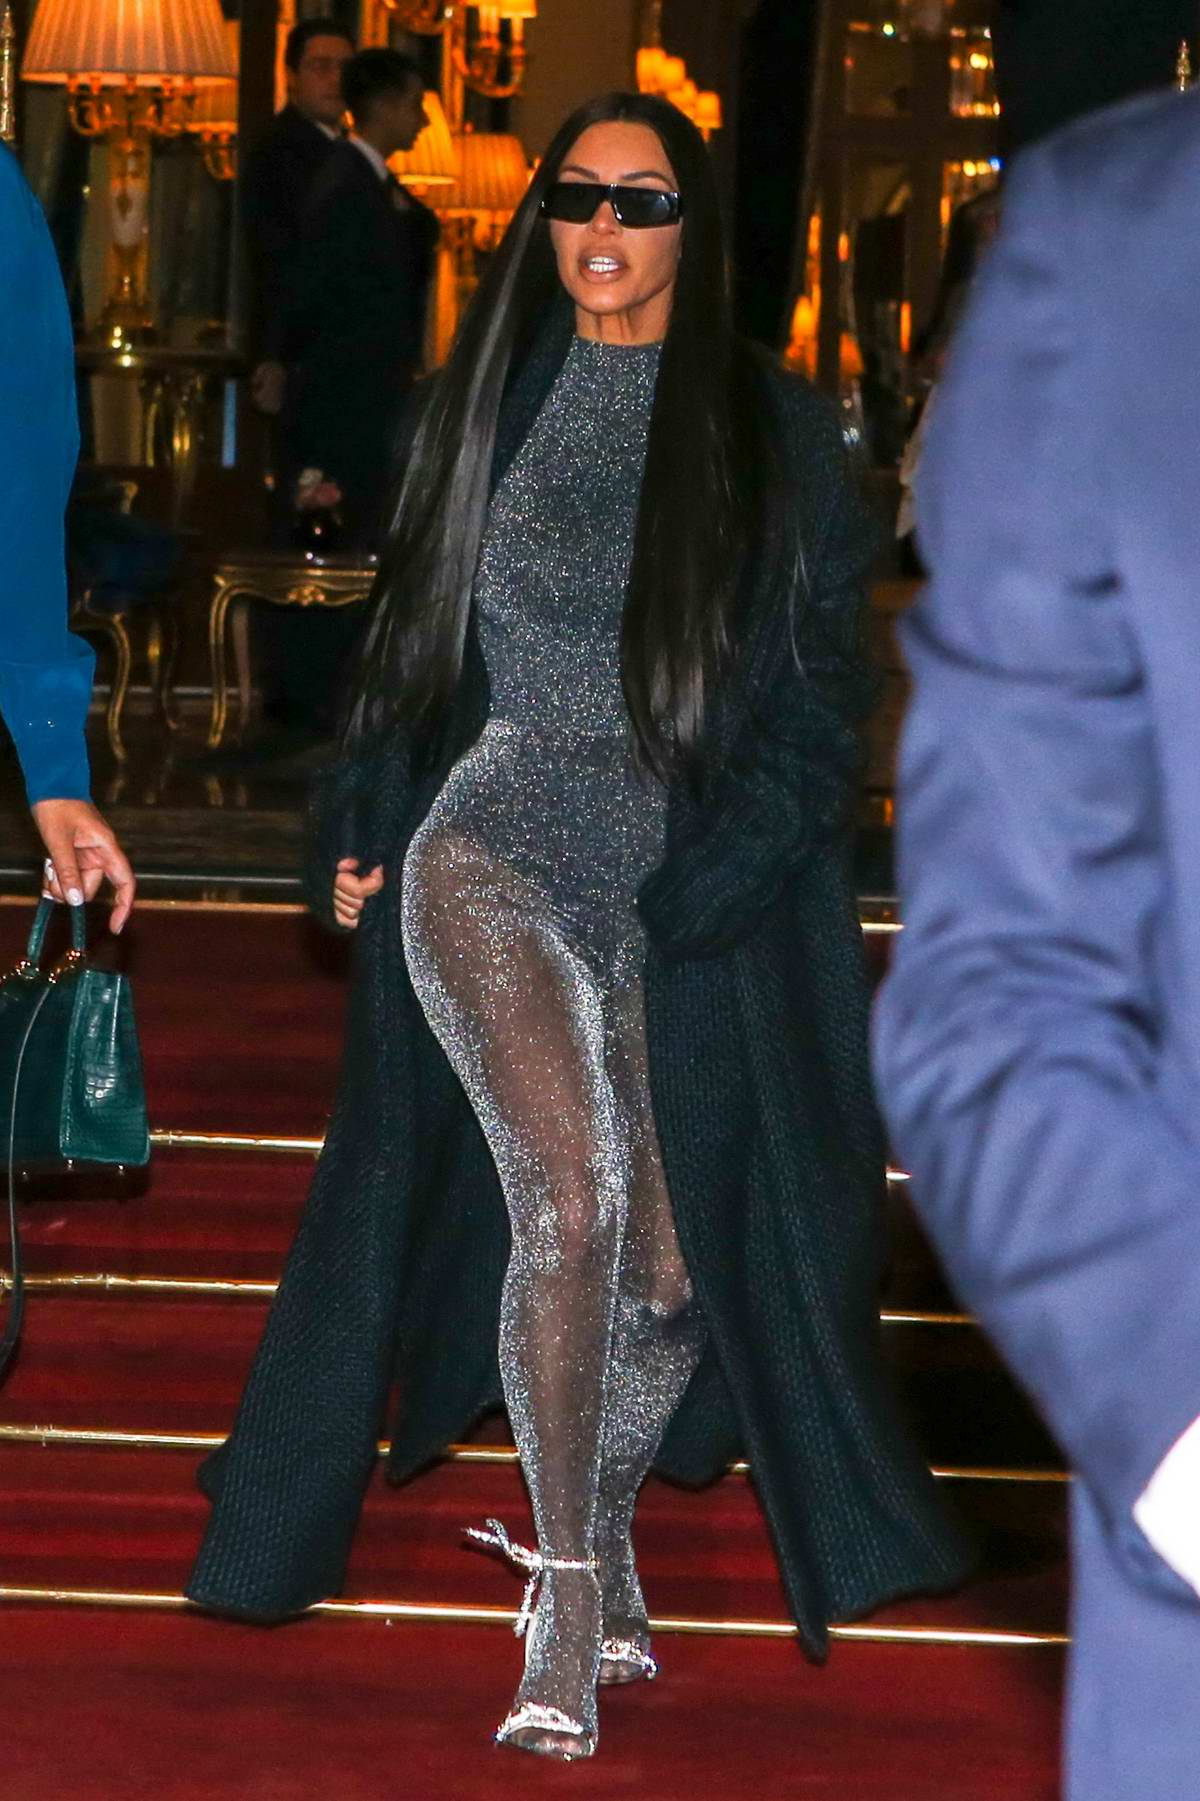 Kim Kardashian dons a long black coat with semi sheer tights as she leaves the Ritz Hotel in Paris, France